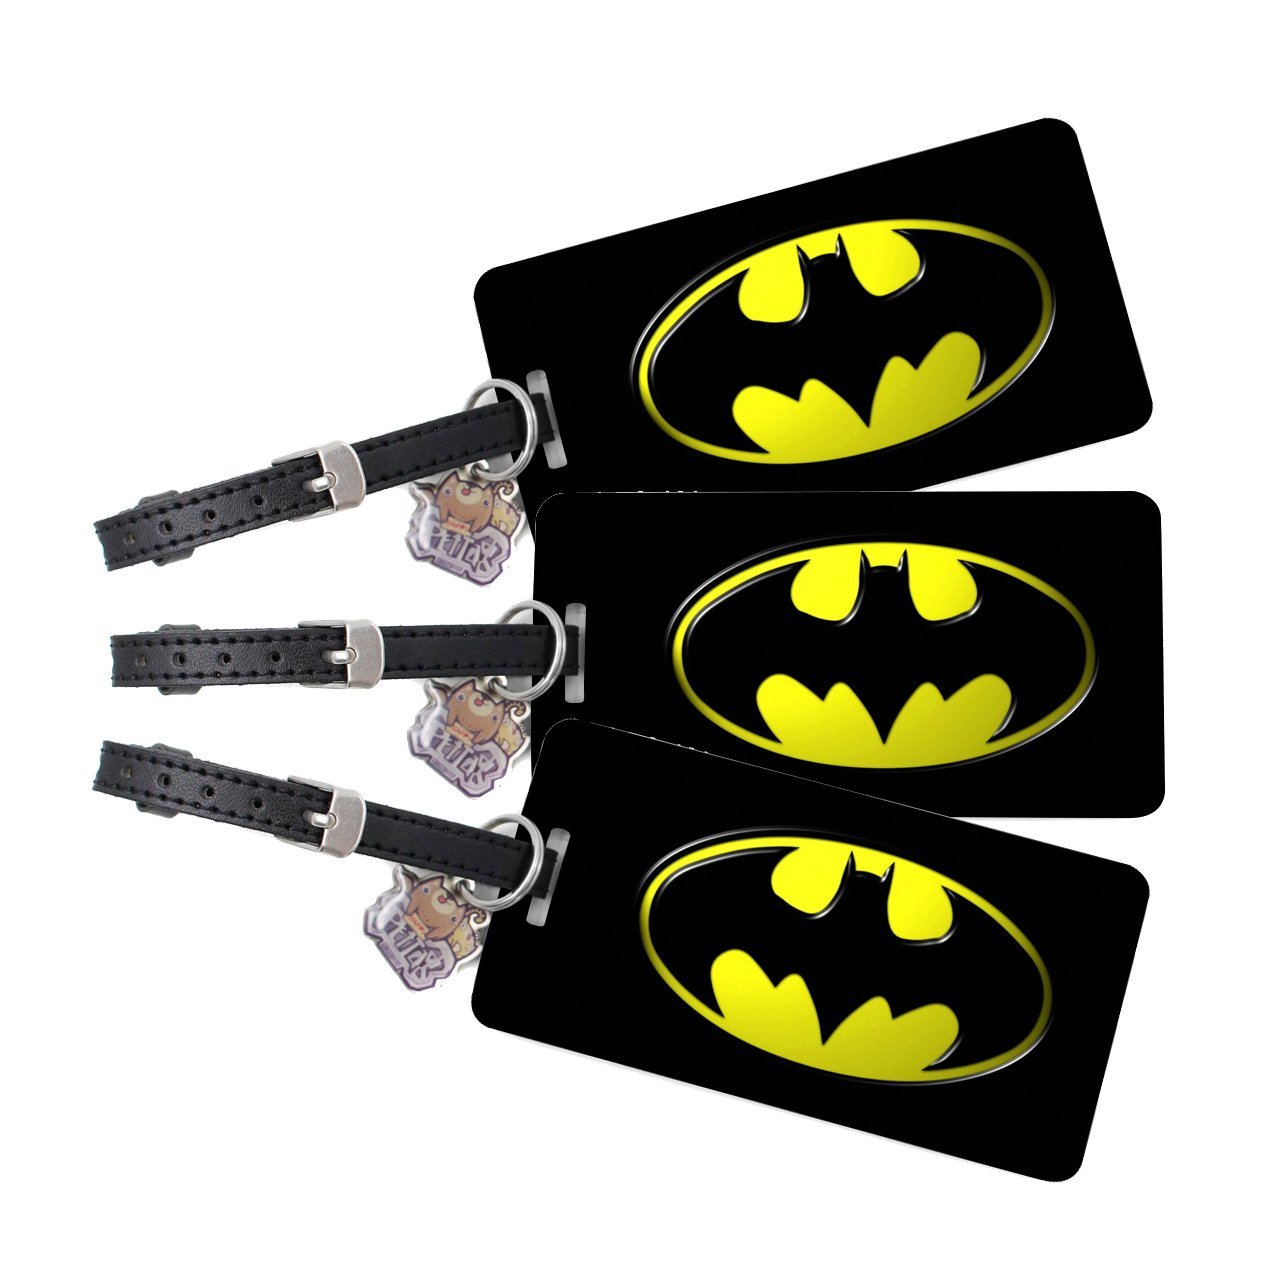 Custom Luggage Tag - Batman Luggage Tag - Personalized Luggage Tag - Set of 3 Custom Luggage Tags - Come with Genuine Leather Strap - Perfect Gift. Includes up to 5 Lines of Customized Text on back.